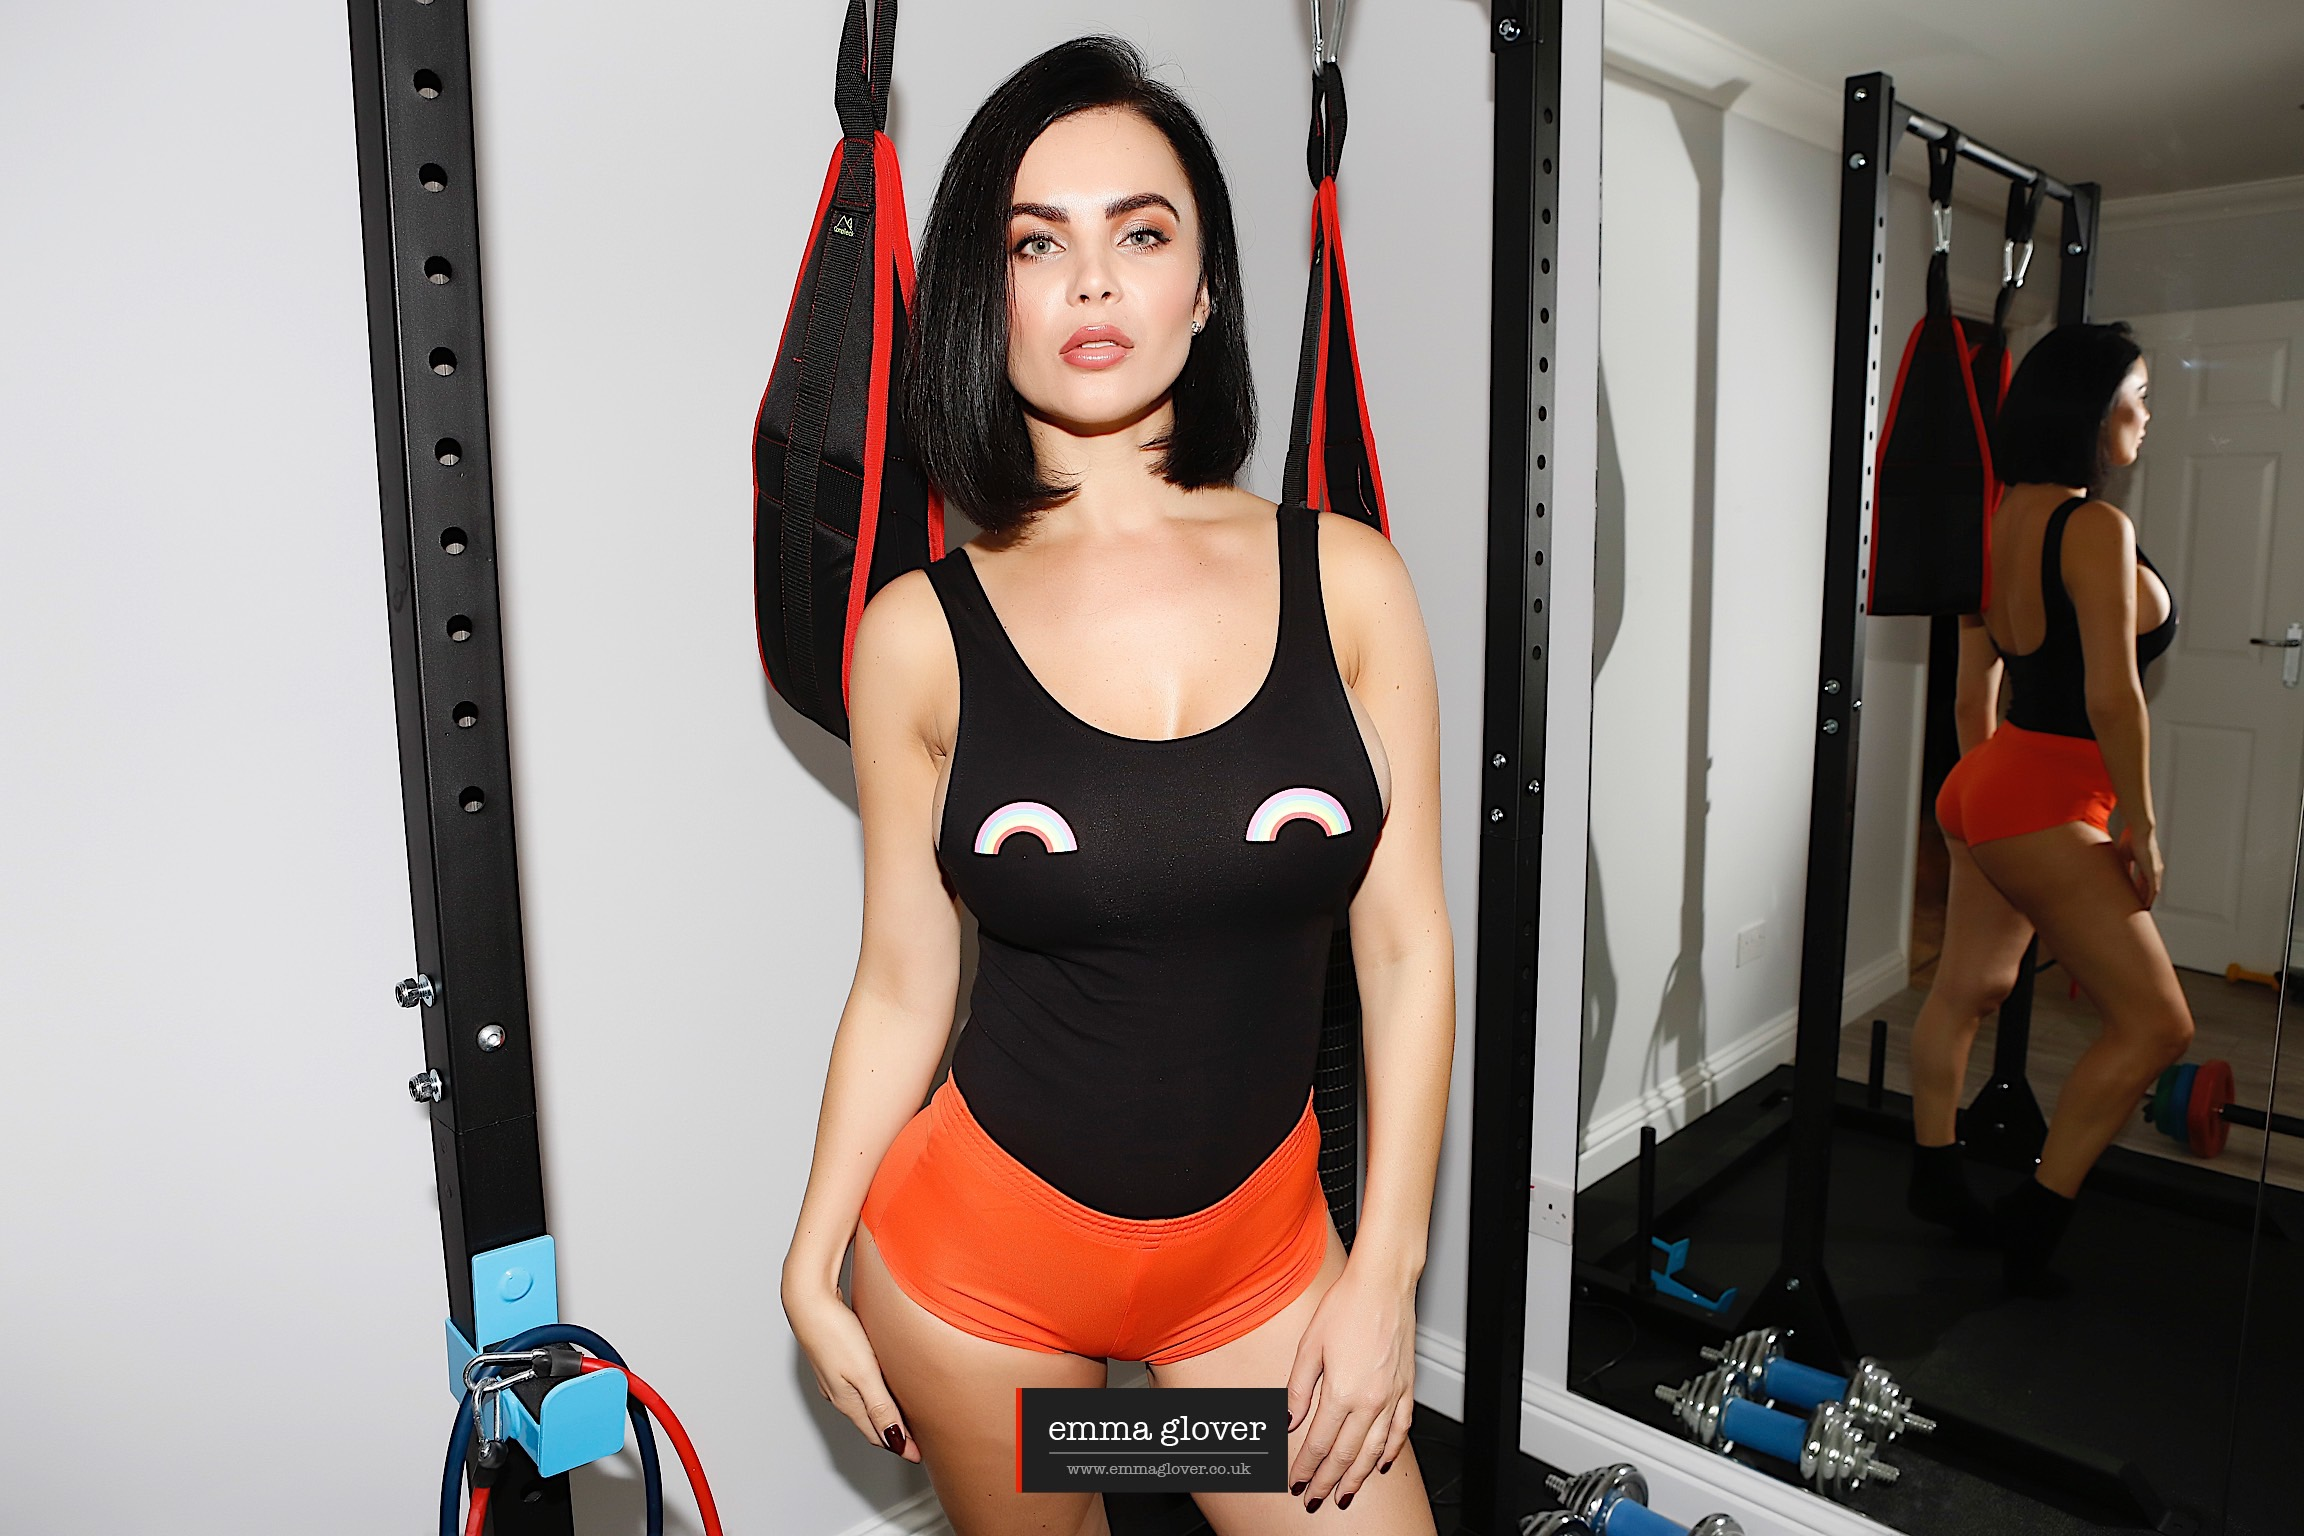 Gym life – 145 Uncensored Pictures